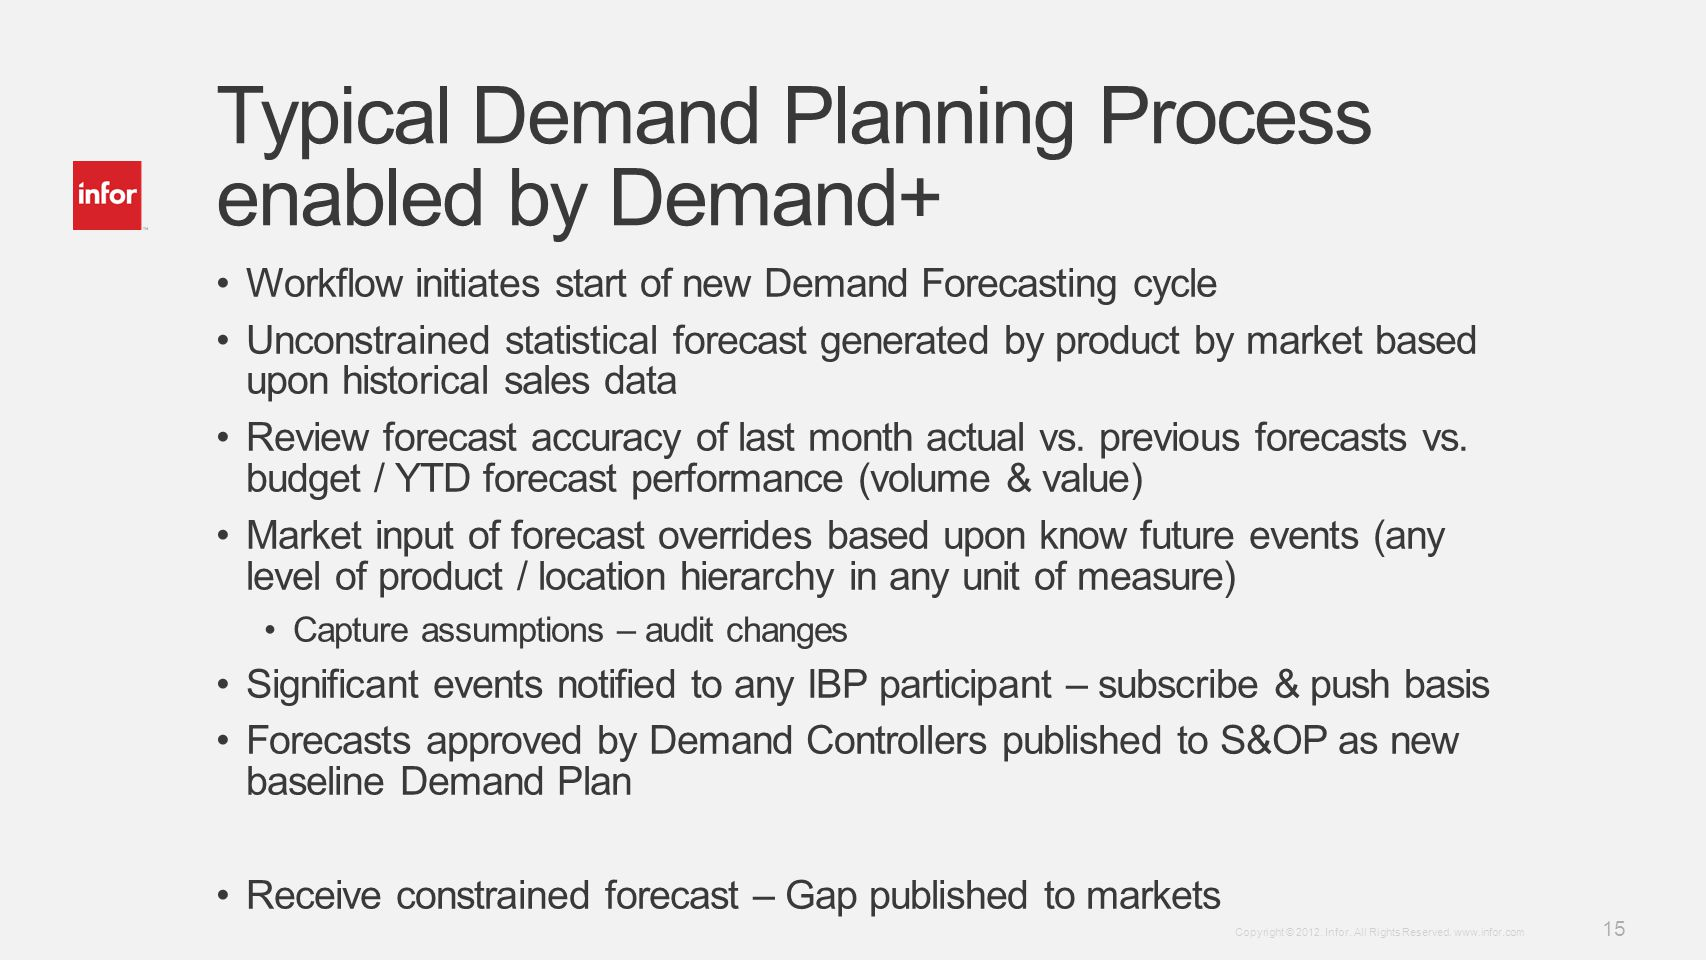 Typical Demand Planning Process enabled by Demand+